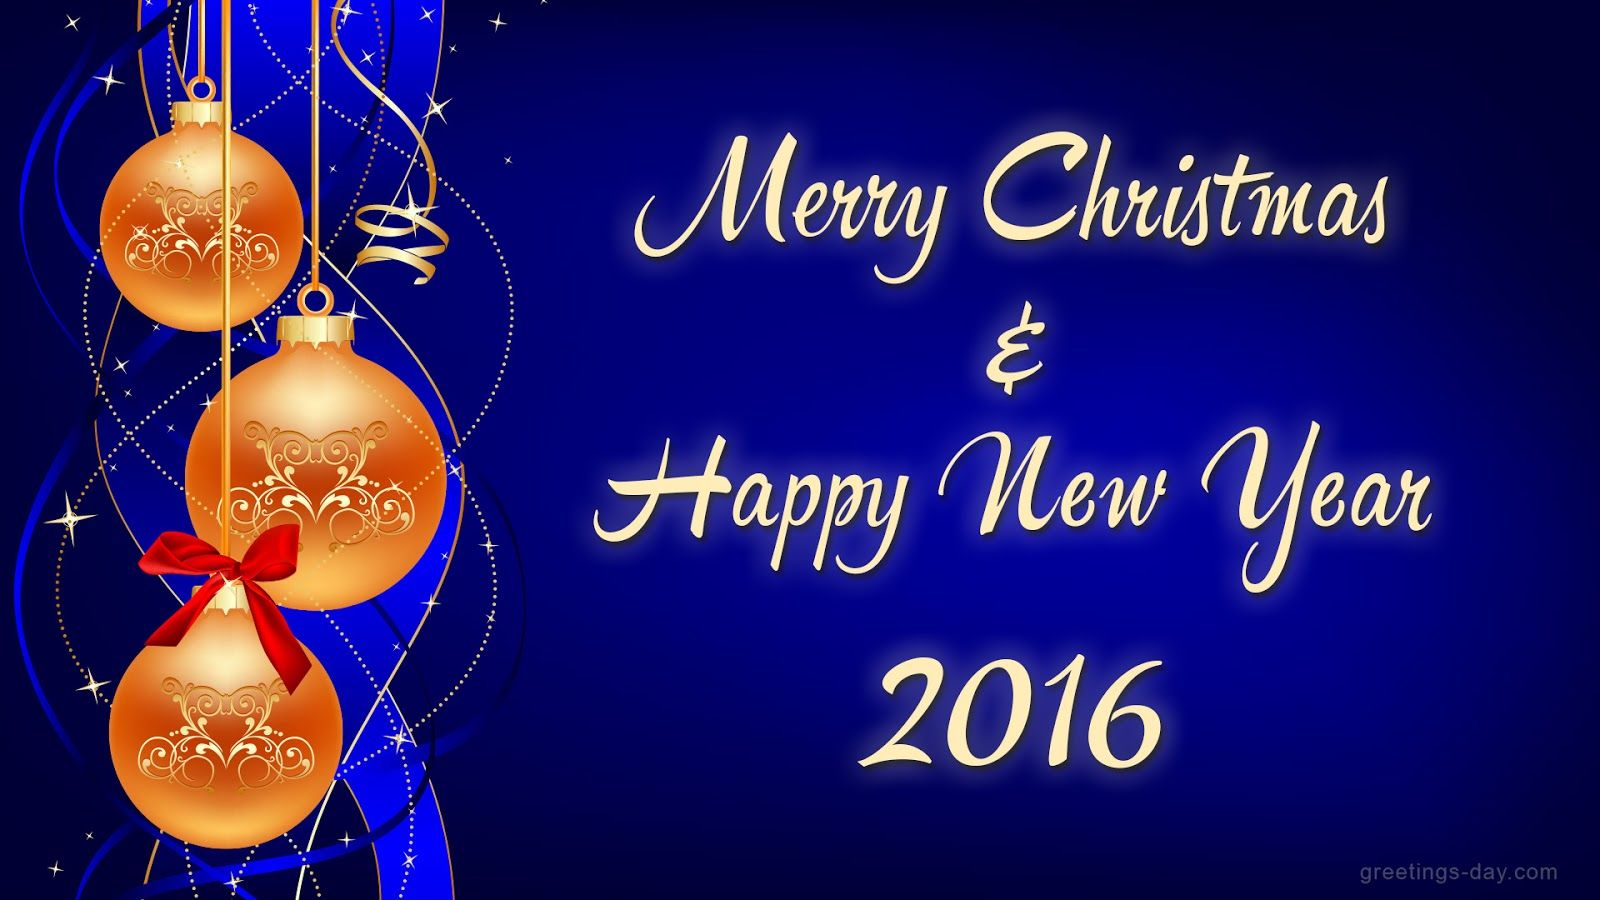 Best Merry Christmas 2016 Wishesquotes And Greetings Funny